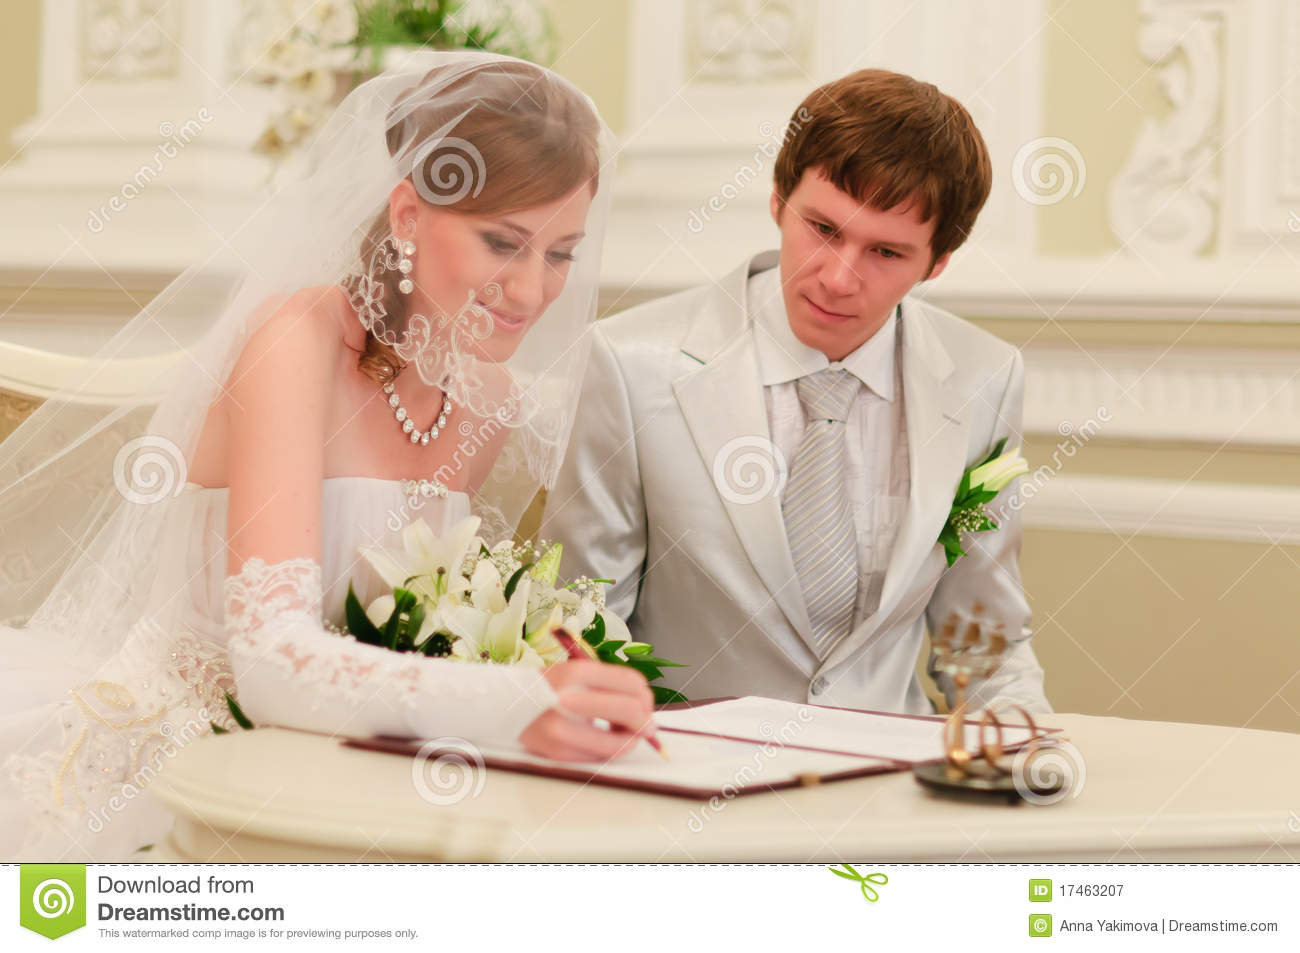 Register marriage in united states